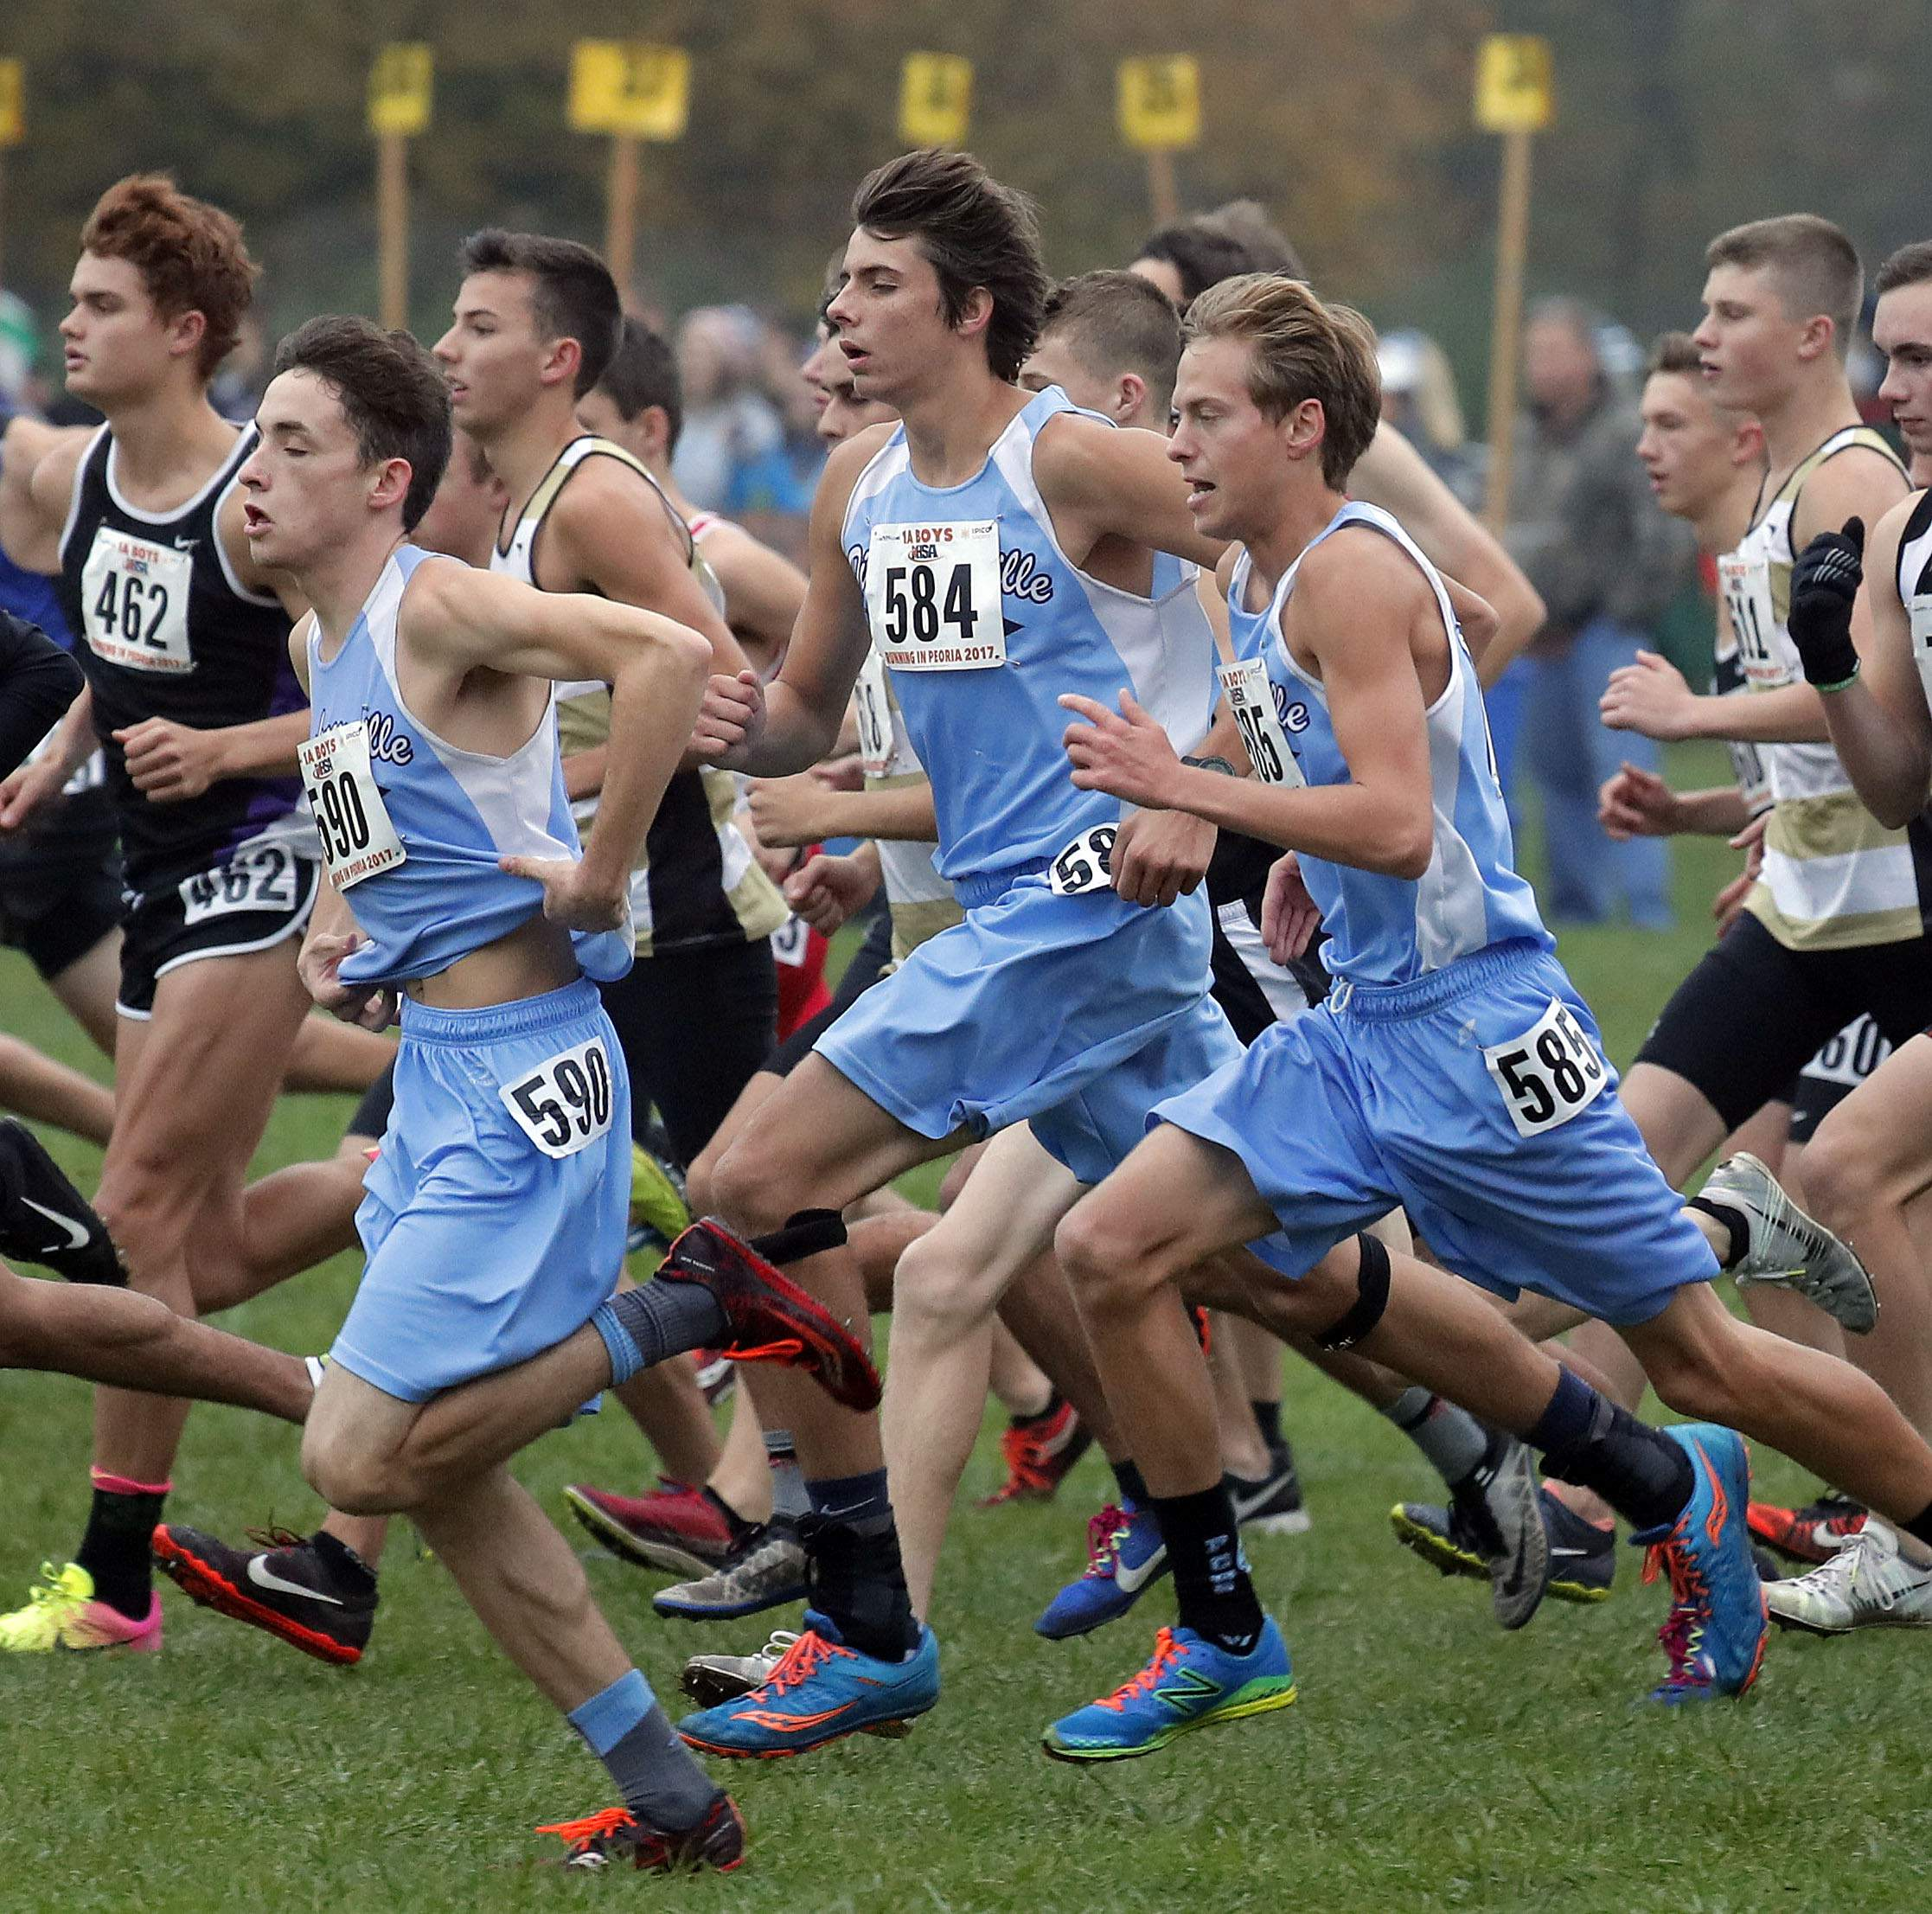 Pinckneyville runners start the race during the boys Class 1A cross-country finals Saturday in Peoria.